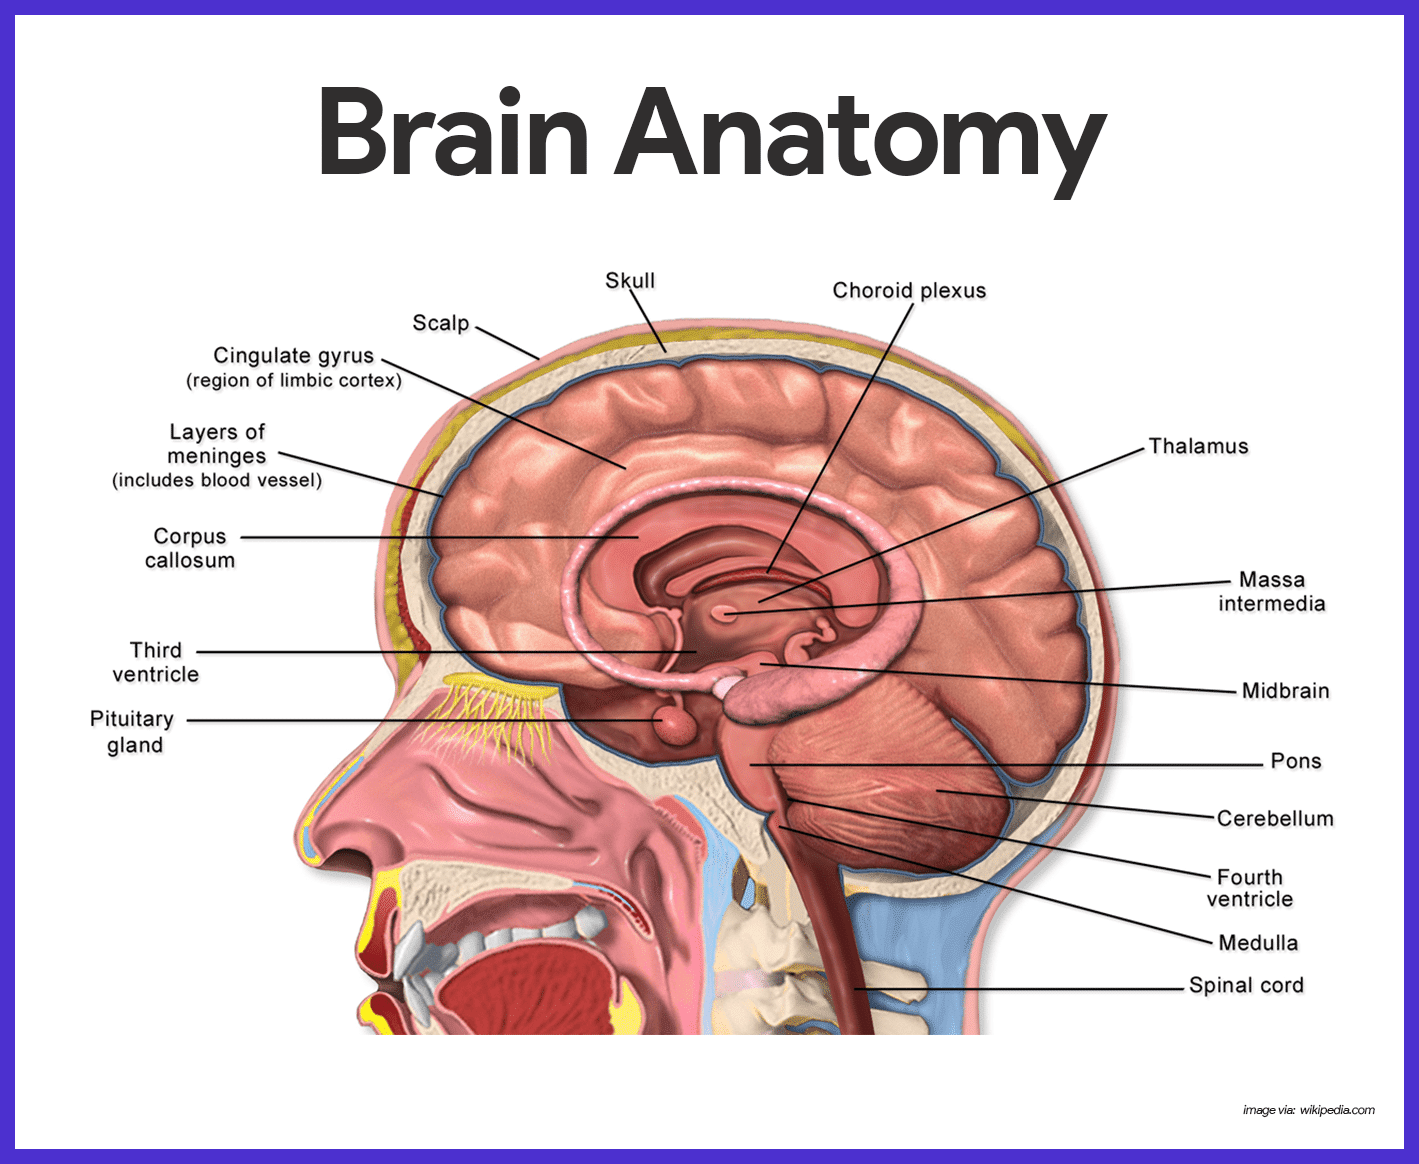 Brain Anatomy Wallpapers